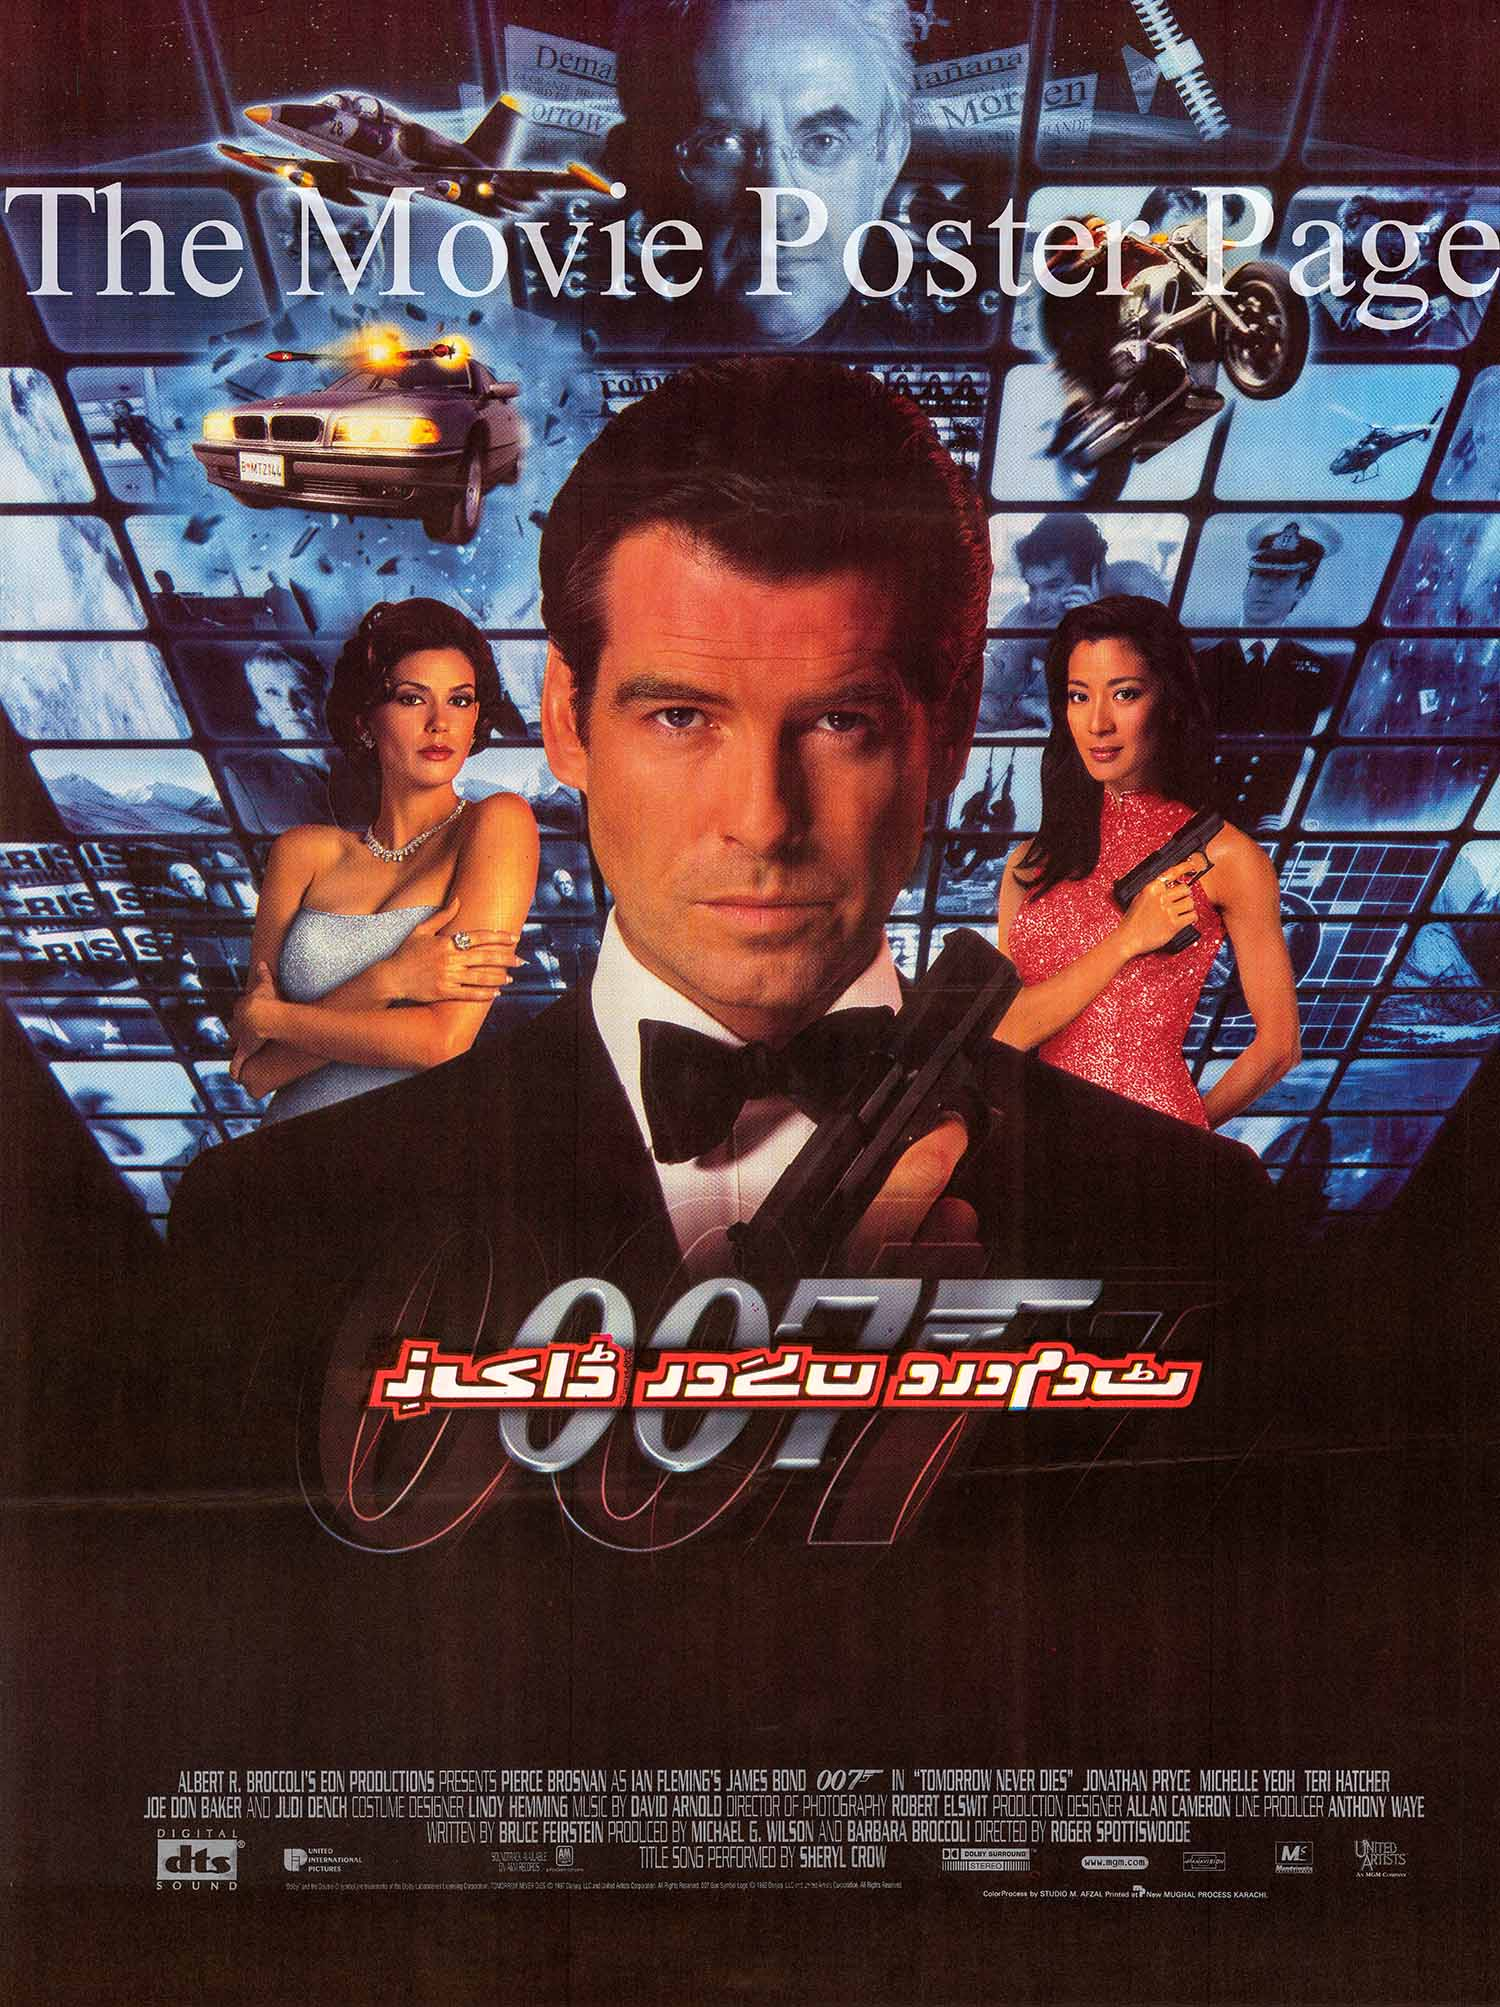 Pictured is a Pakistani promotional poster for the 1997 Roger Spottiswoode film Tomorrow Never Dies starring Pierce Brosnan as James Bond.